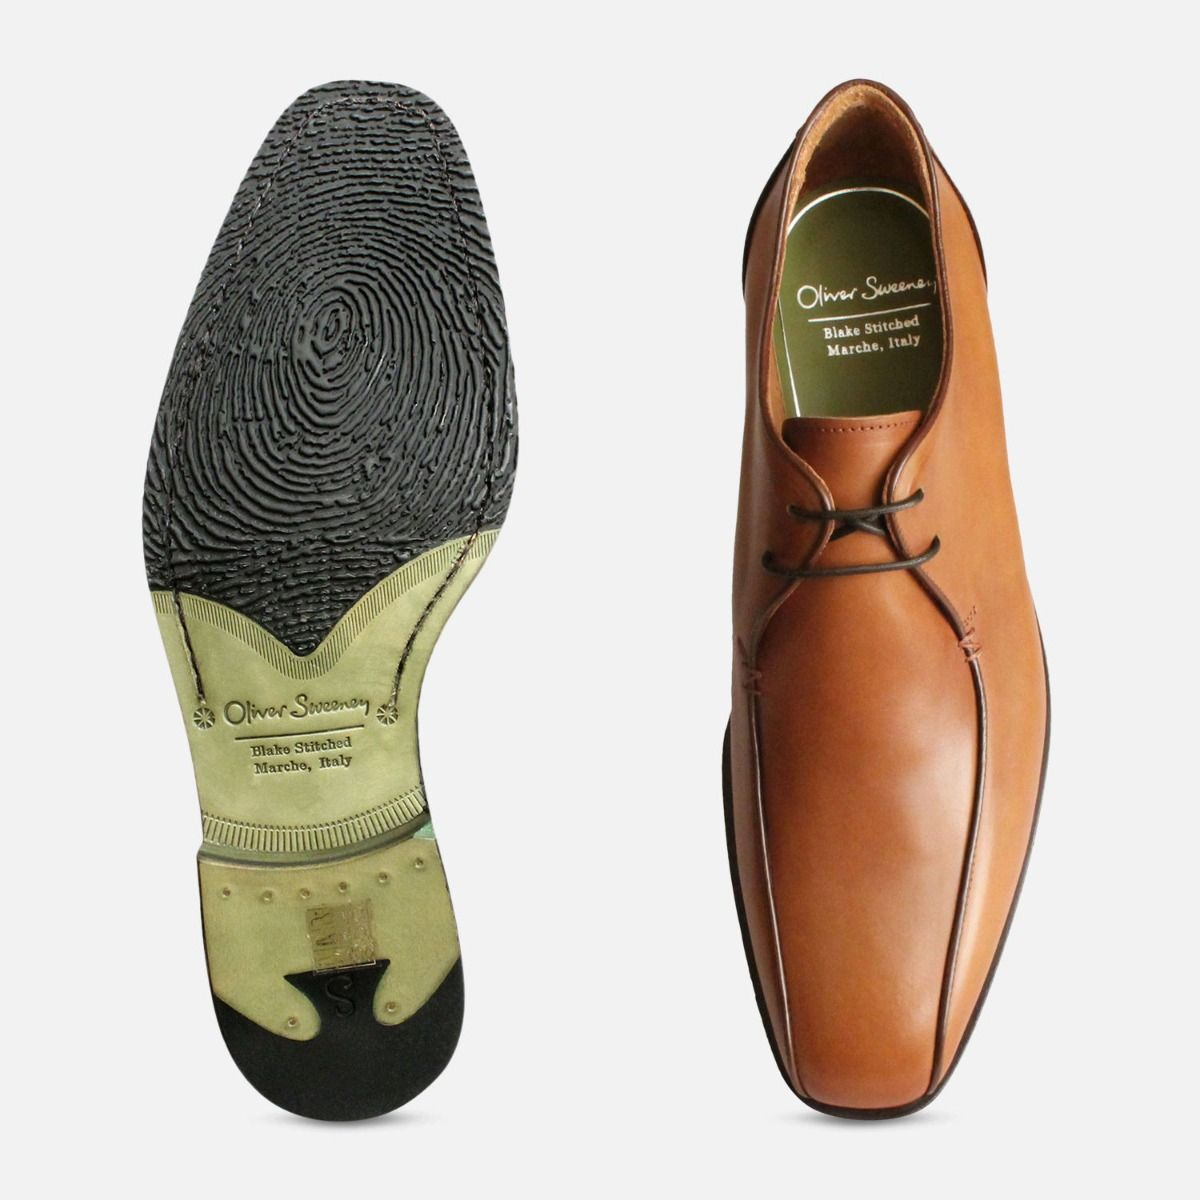 Brown Italian Shoes by Oliver Sweeney